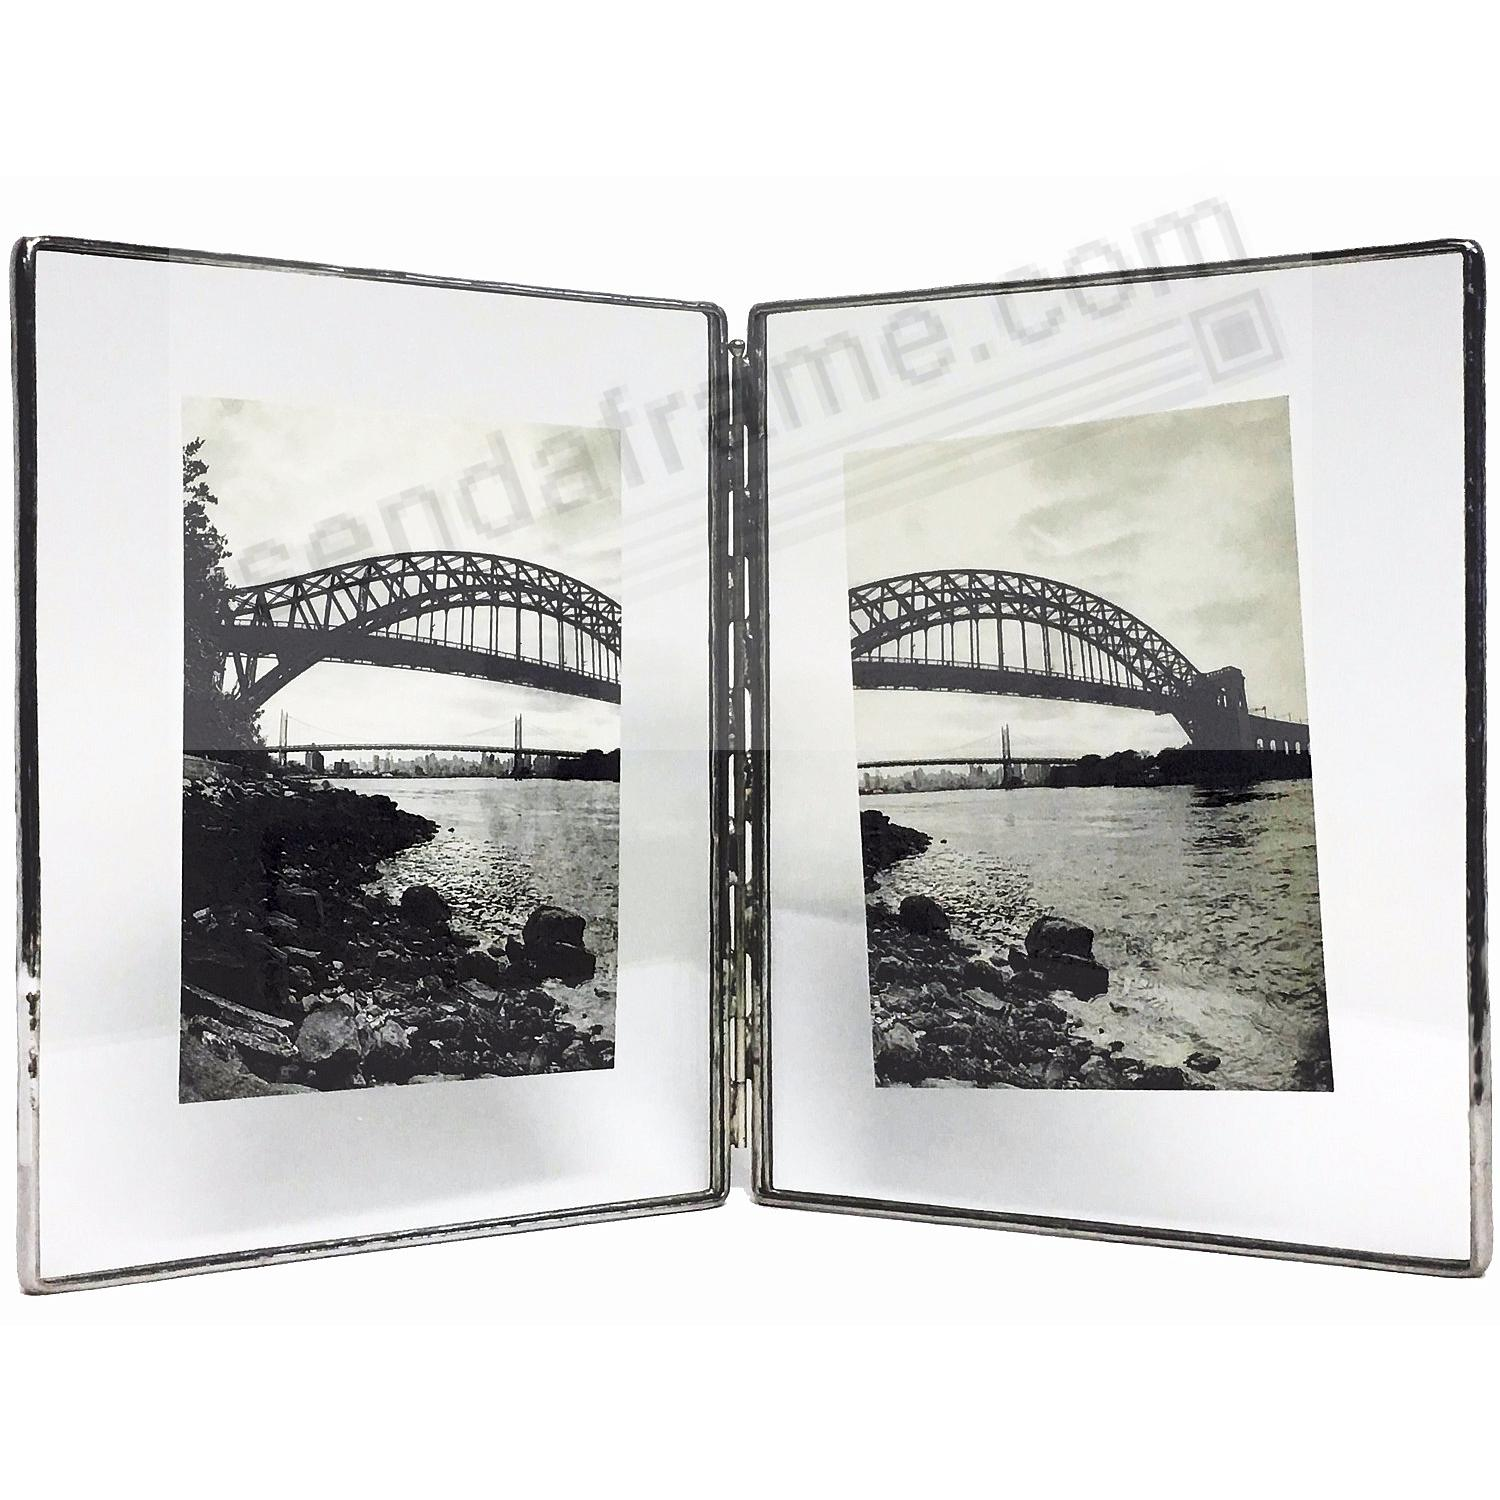 SILVER + Clear Glass Float Frame 4x5/3x4 Hinged Double by